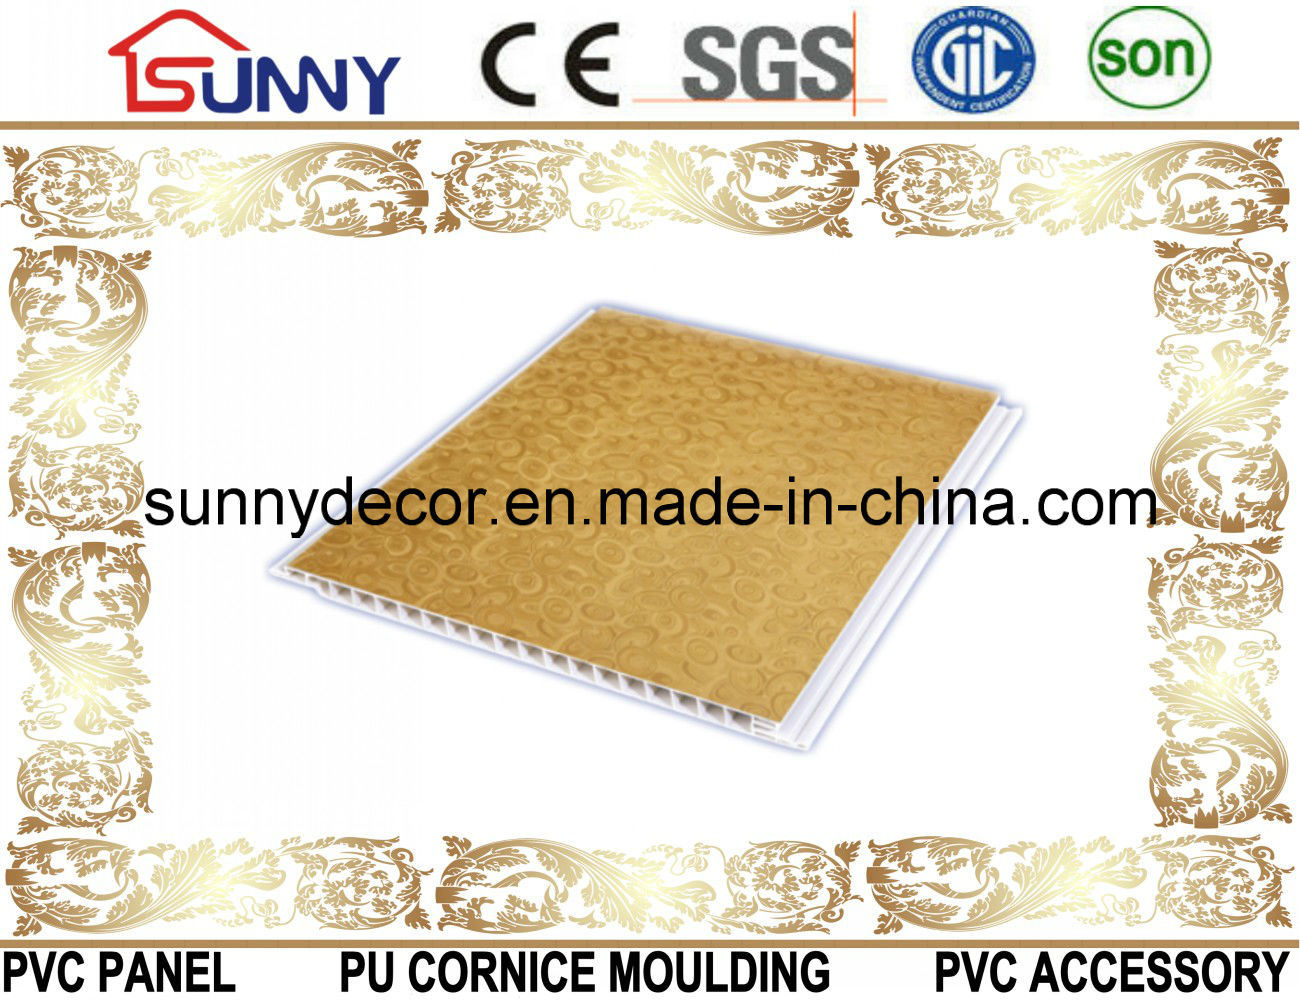 Lamination Groove PVC Ceiling Panel, PVC Wall Panel, PVC Ceiling Tile